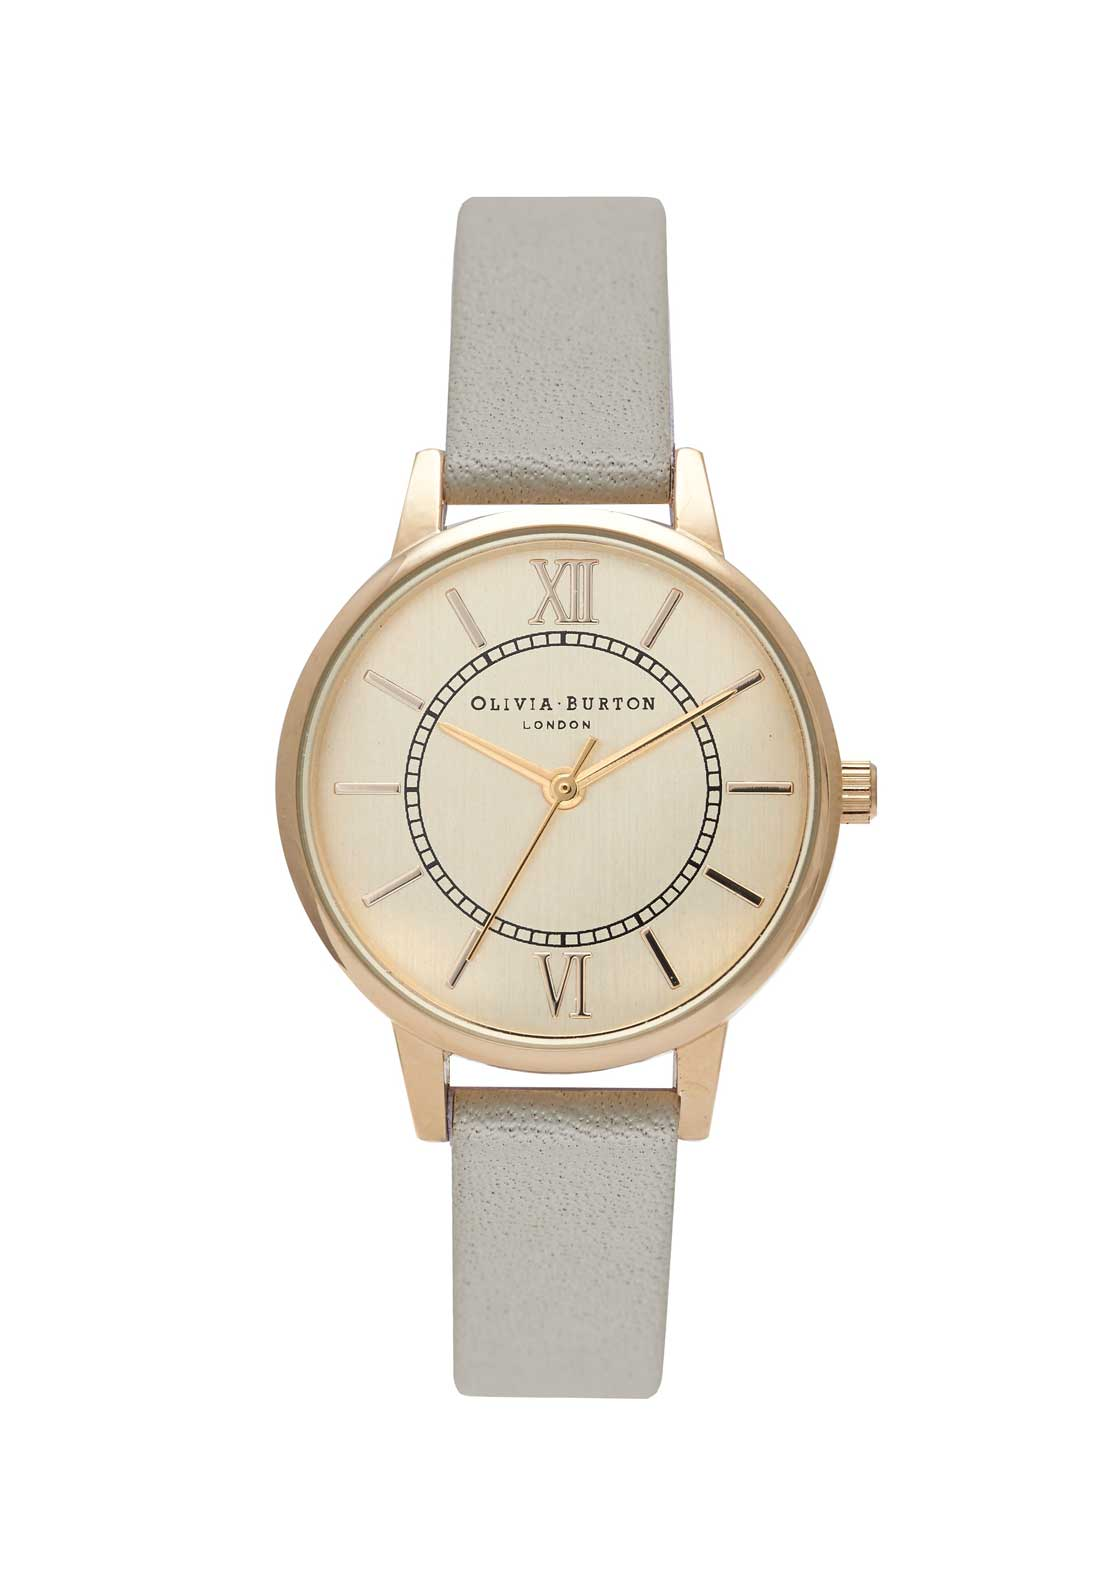 Olivia Burton Wonderland Watch in Grey, Gold